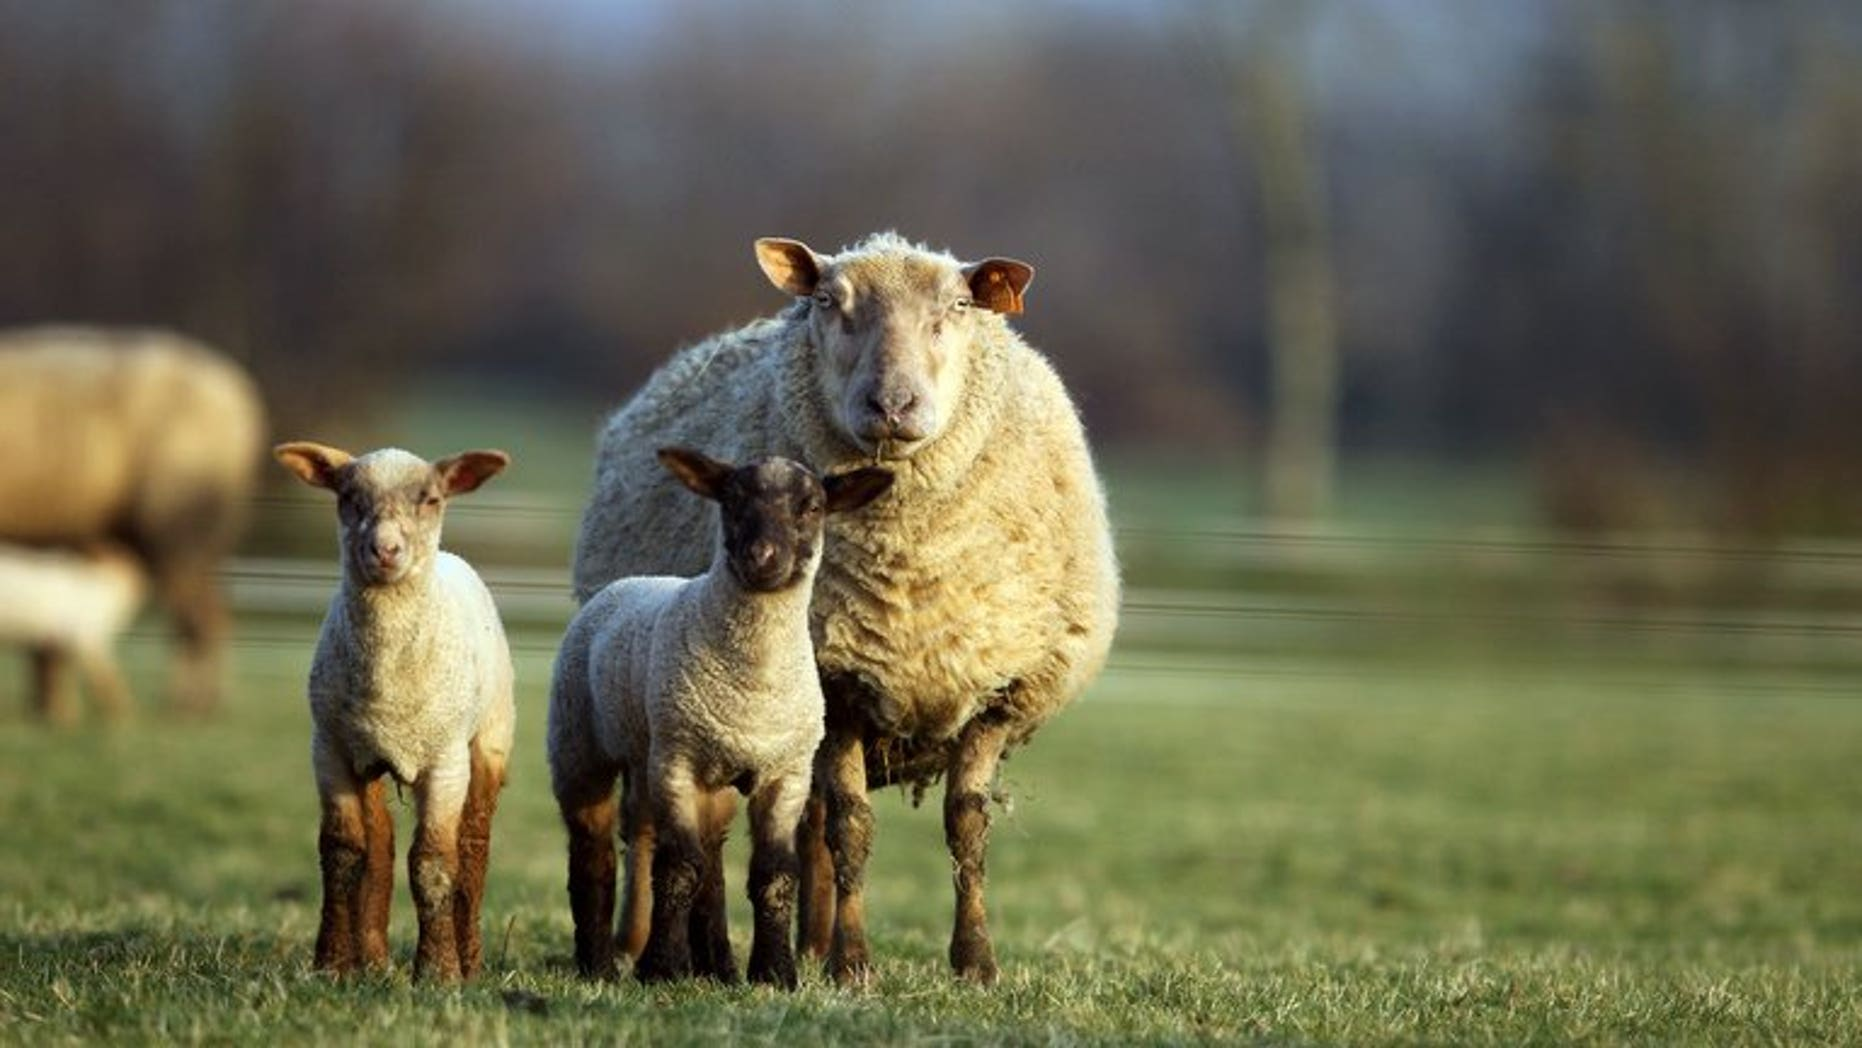 Kazakh side Shakhter Karagandy have called on an unusual means to gain the edge over Celtic in their crucial Champions League play off clash by slaughtering a sheep at the stadium for good luck.